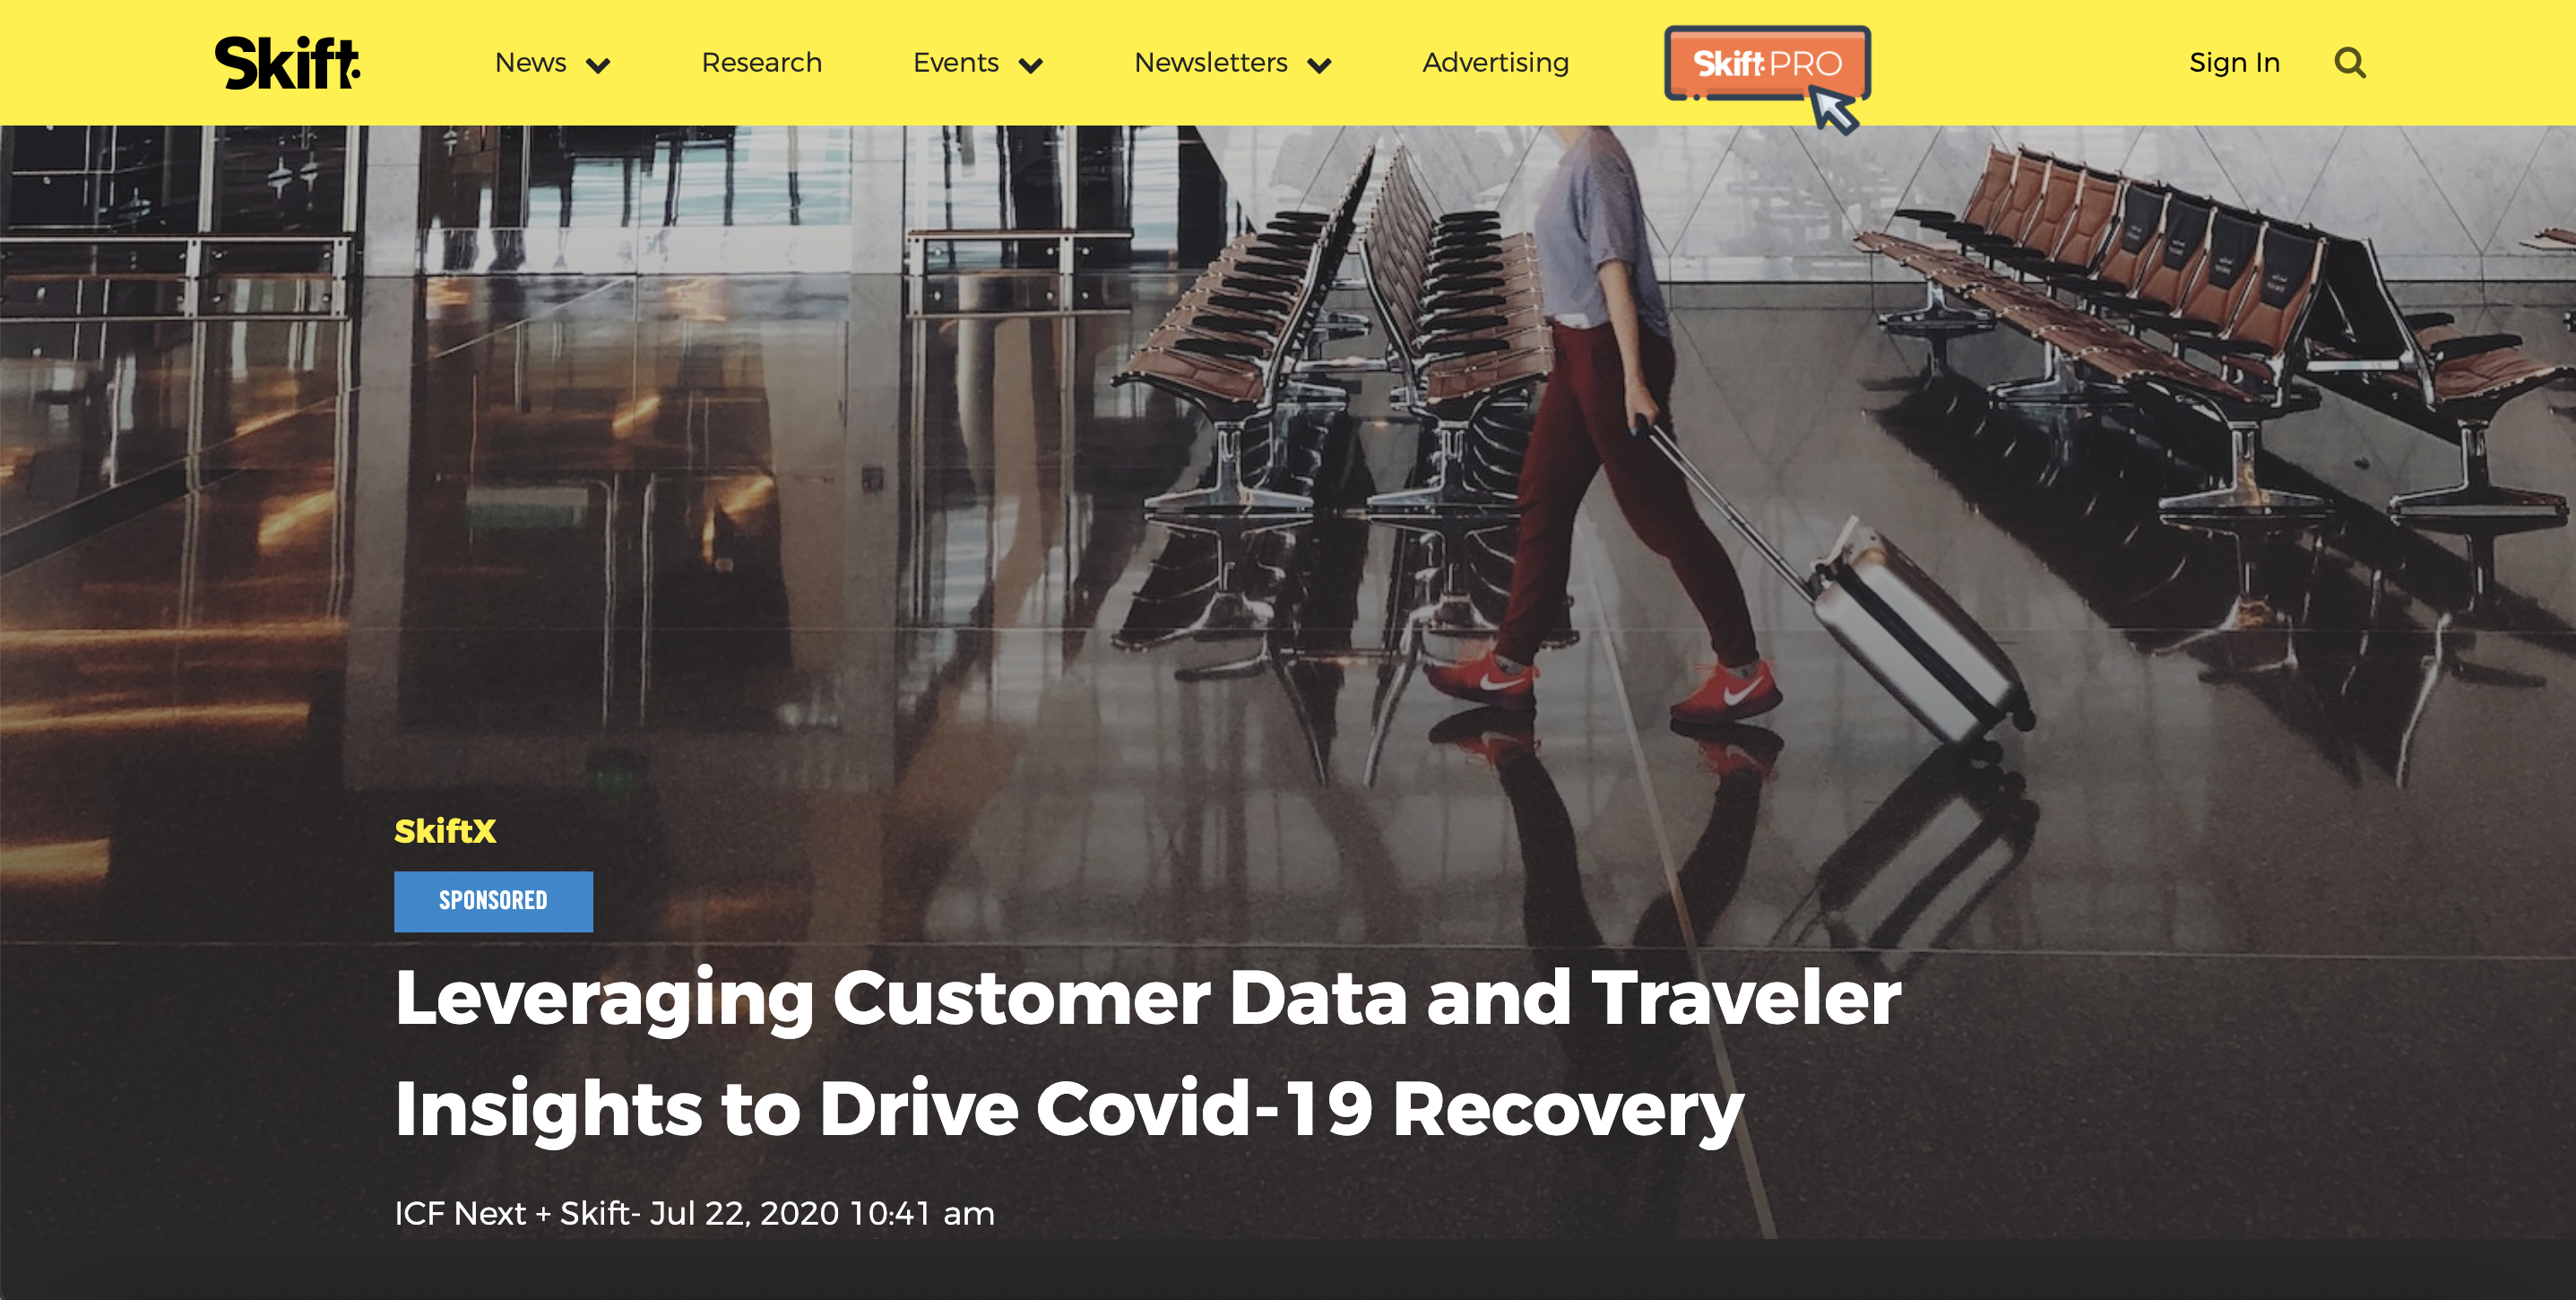 Branded content by ICF Next on Skift